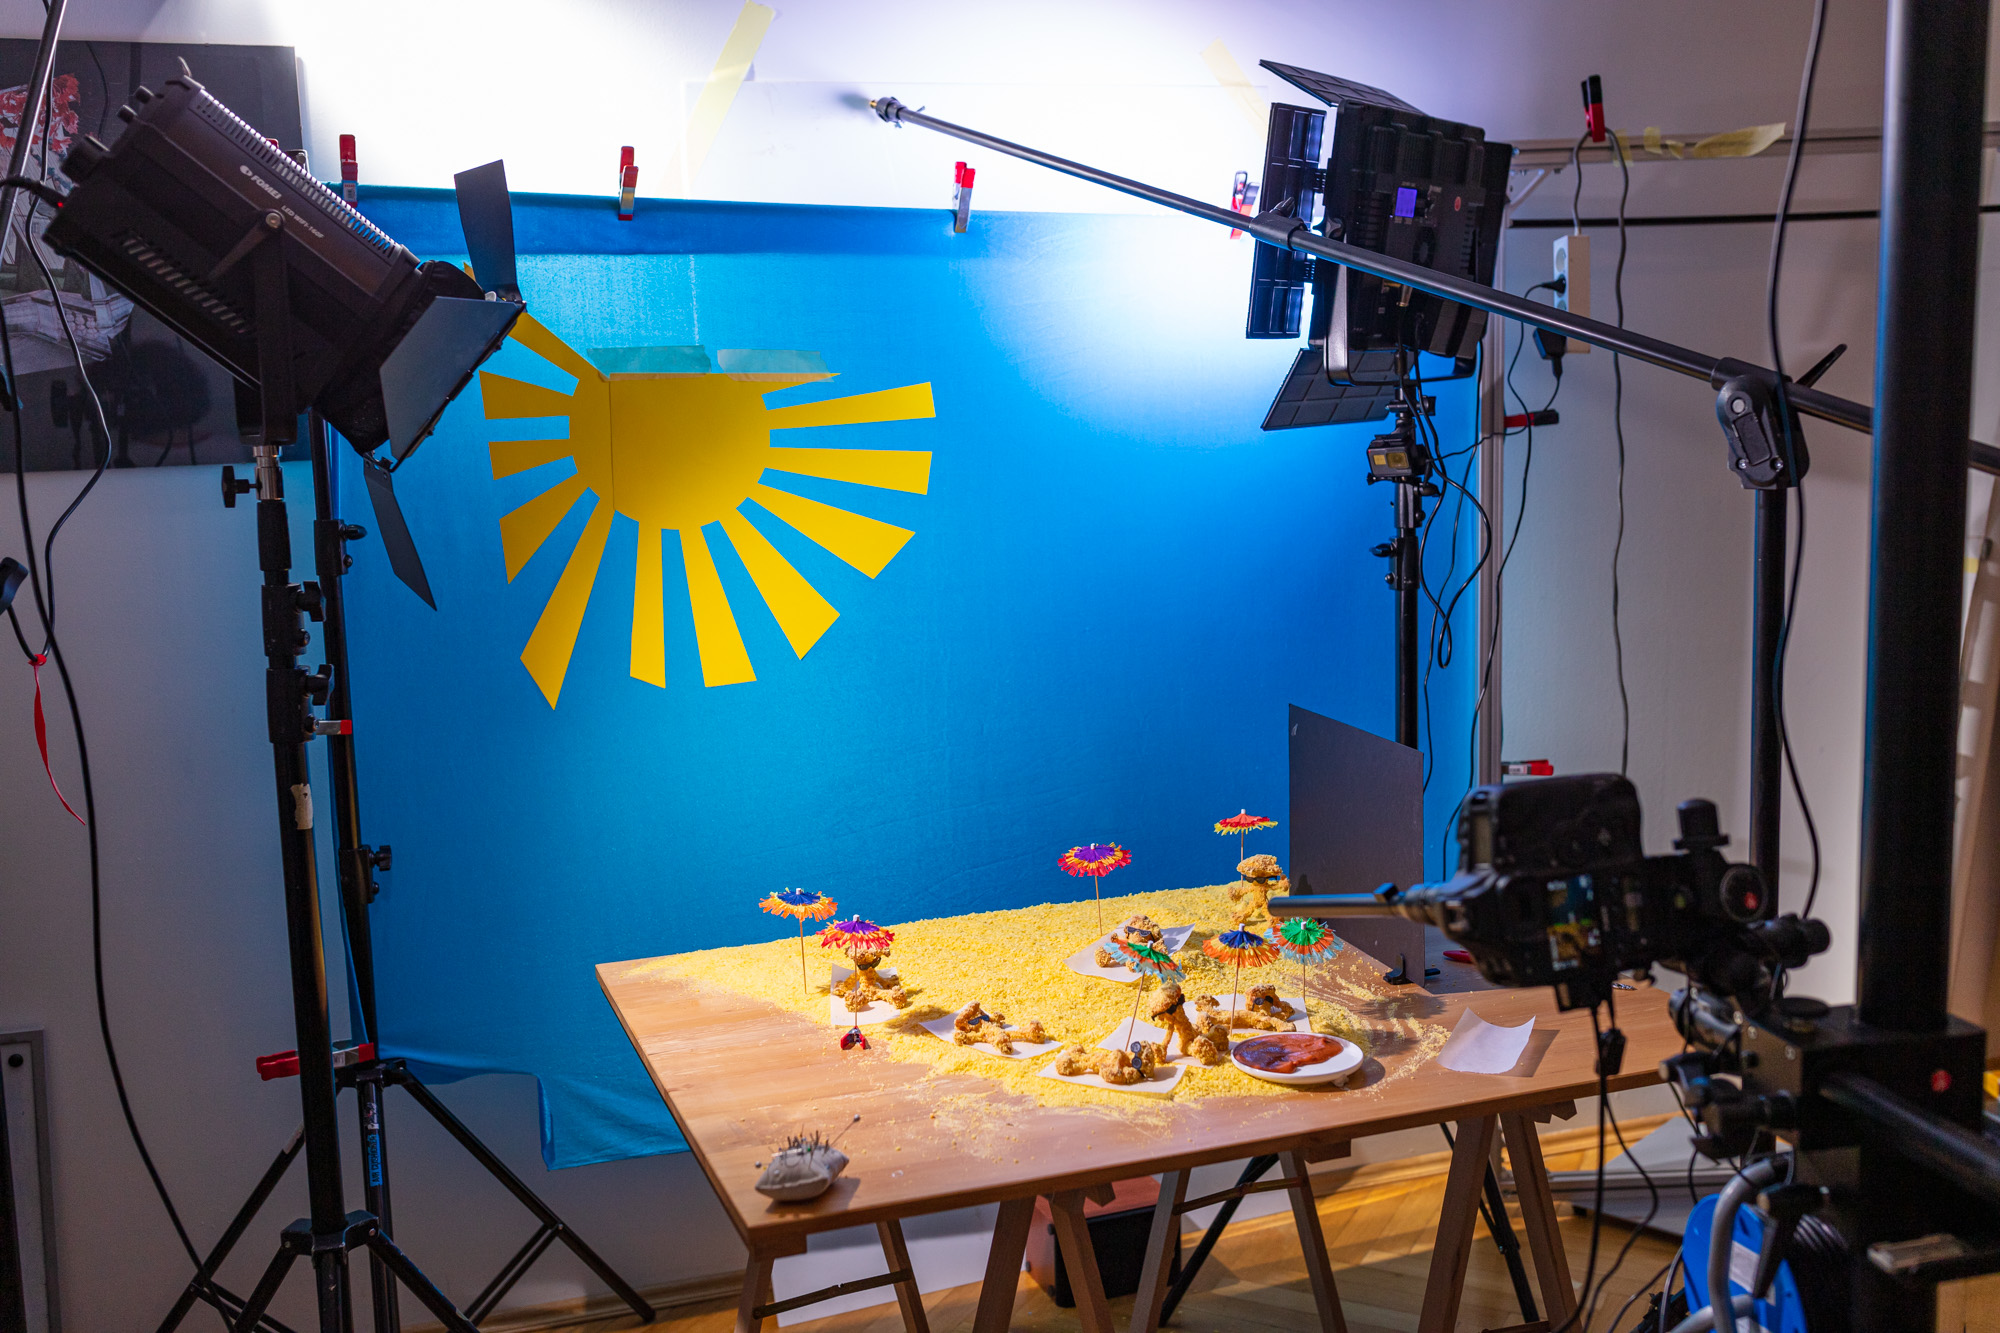 Behind the scenes of a food video production